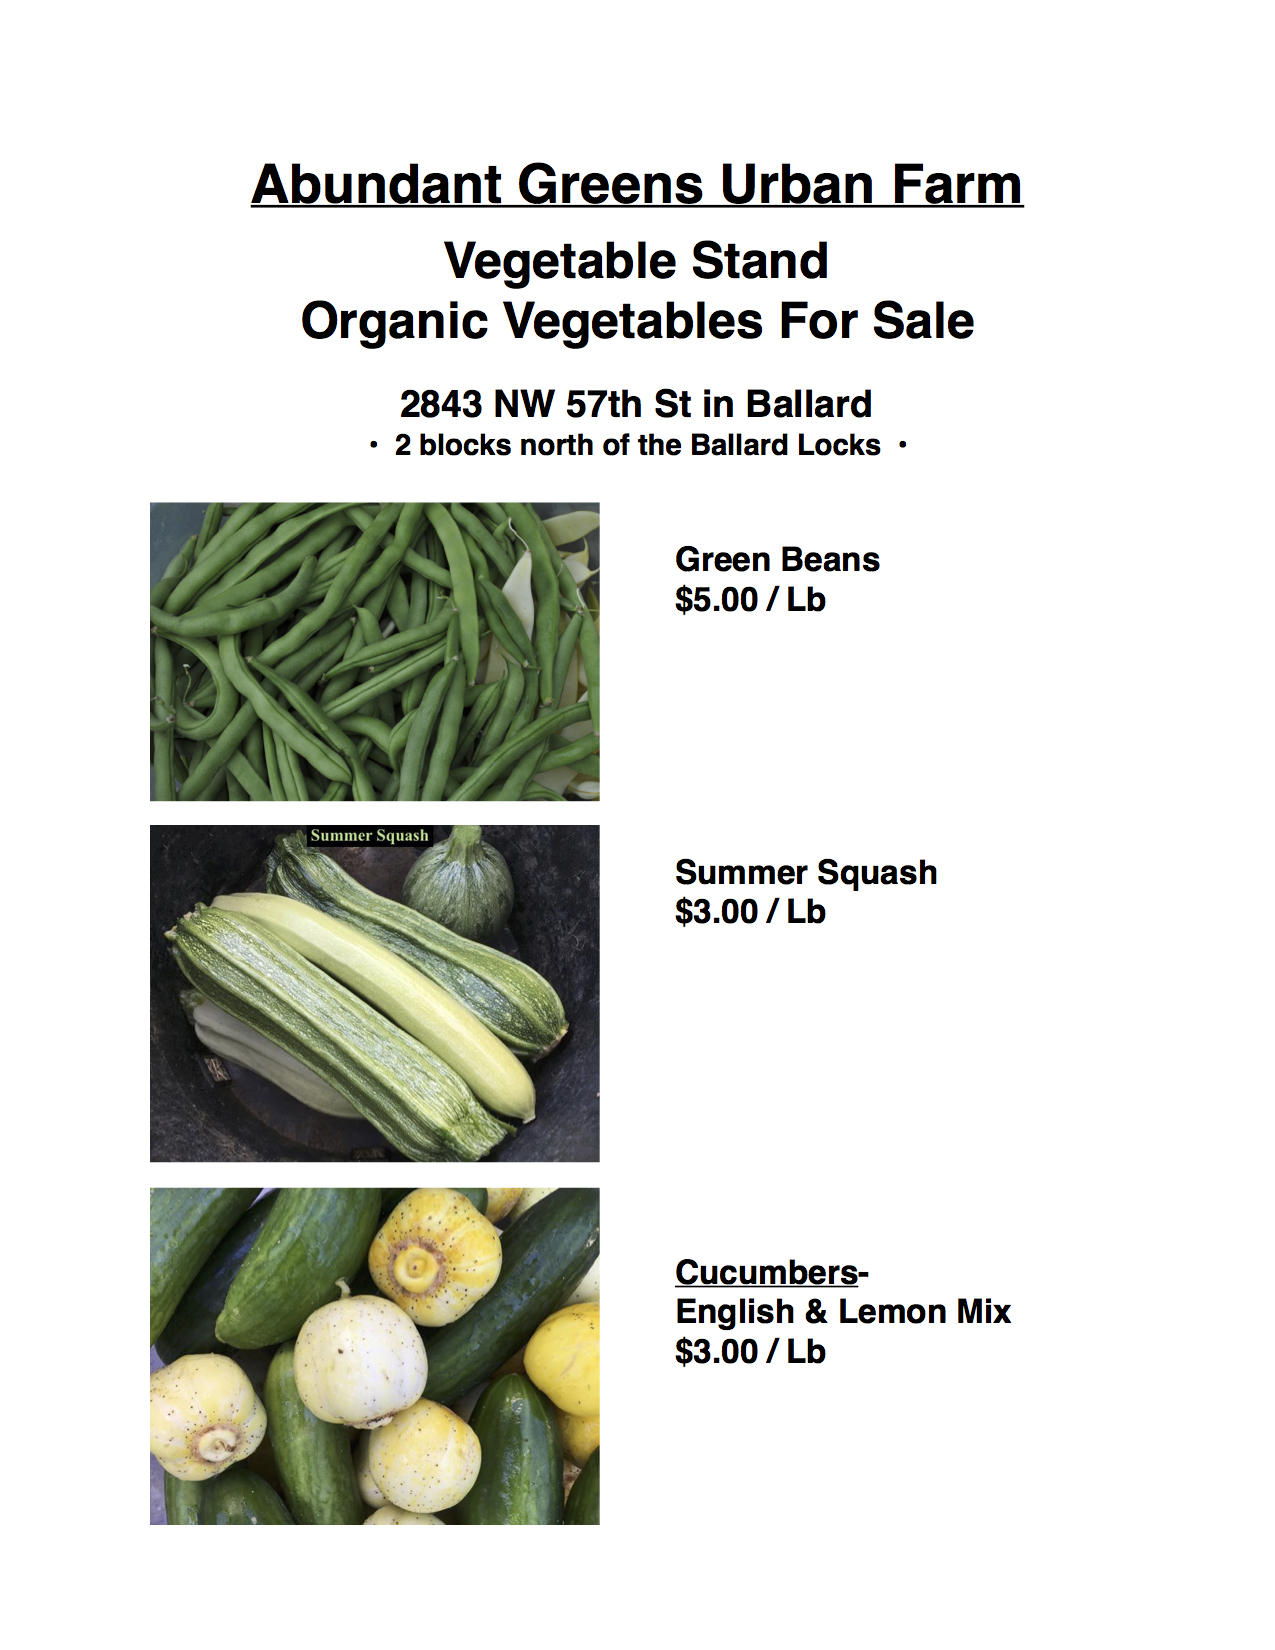 Vegetable Stand / Organic Vegetables For Sale | Abundant Greens